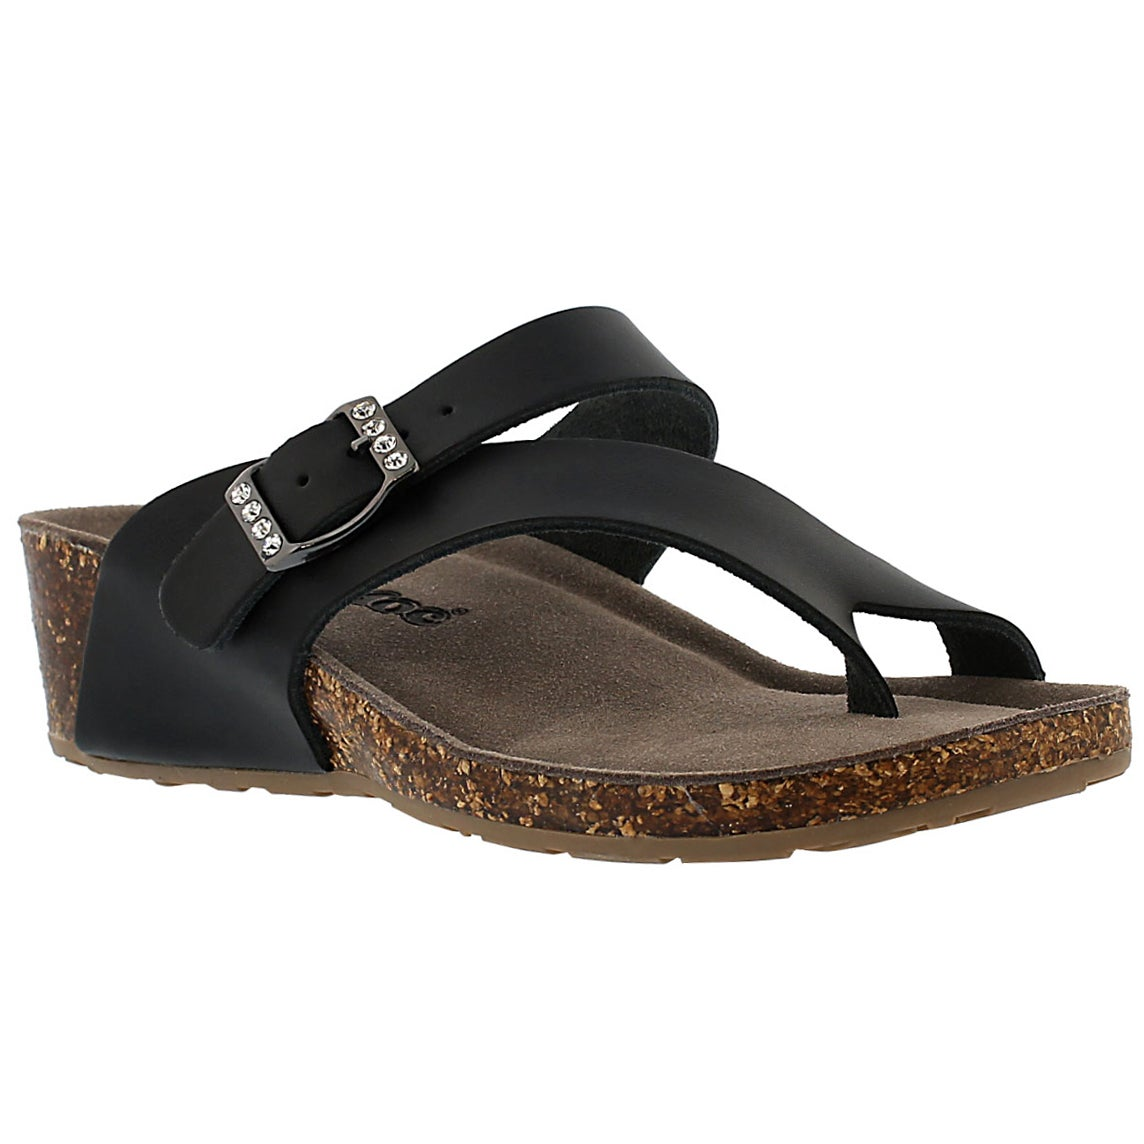 Women's AMBER 3 black memory foam sandals